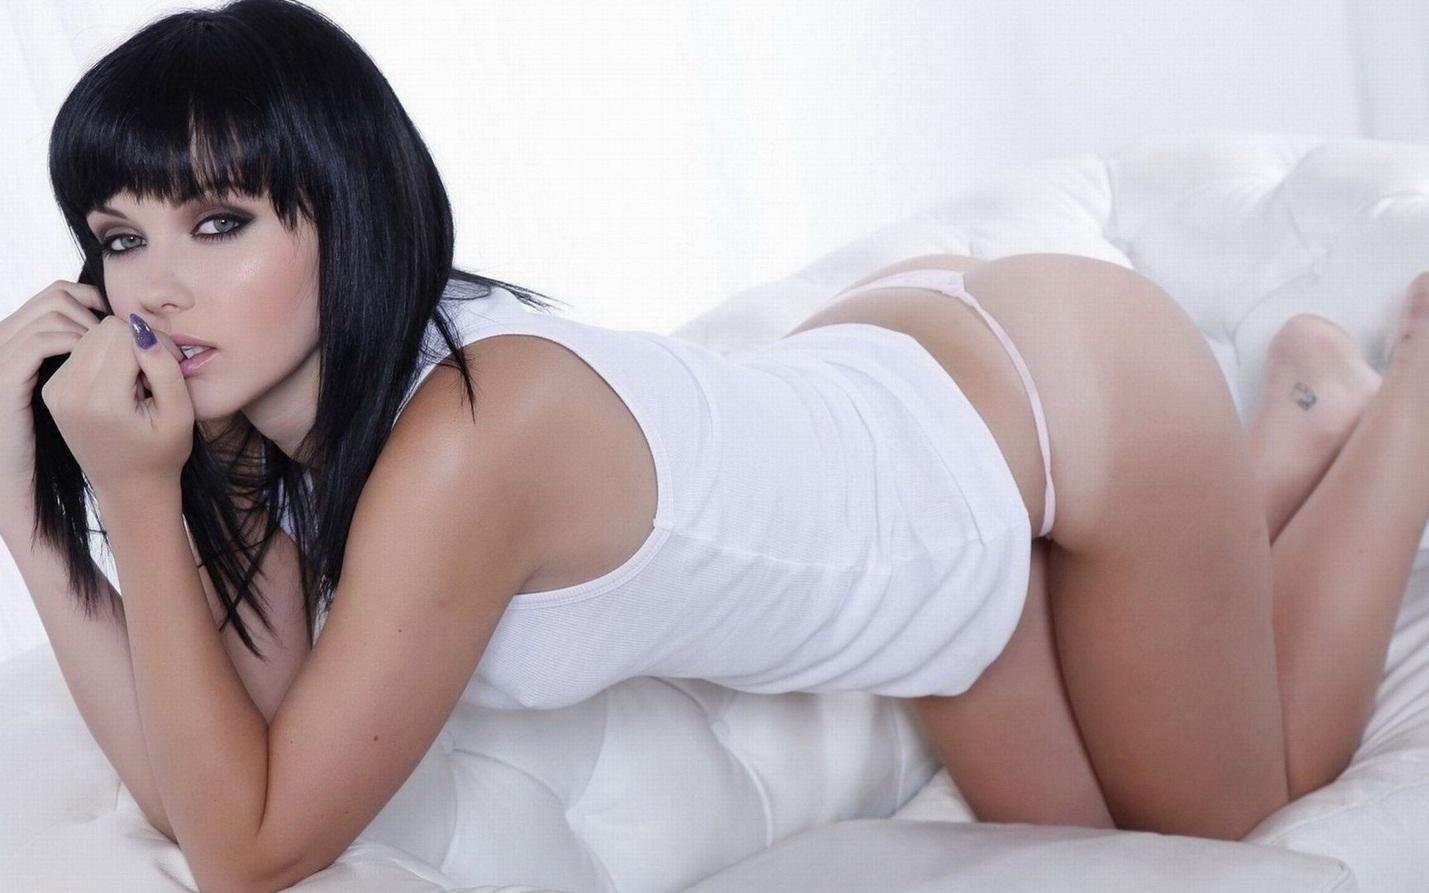 C:\Users\Public\Pictures\Sample Pictures\Dating\London-Escorts.jpg